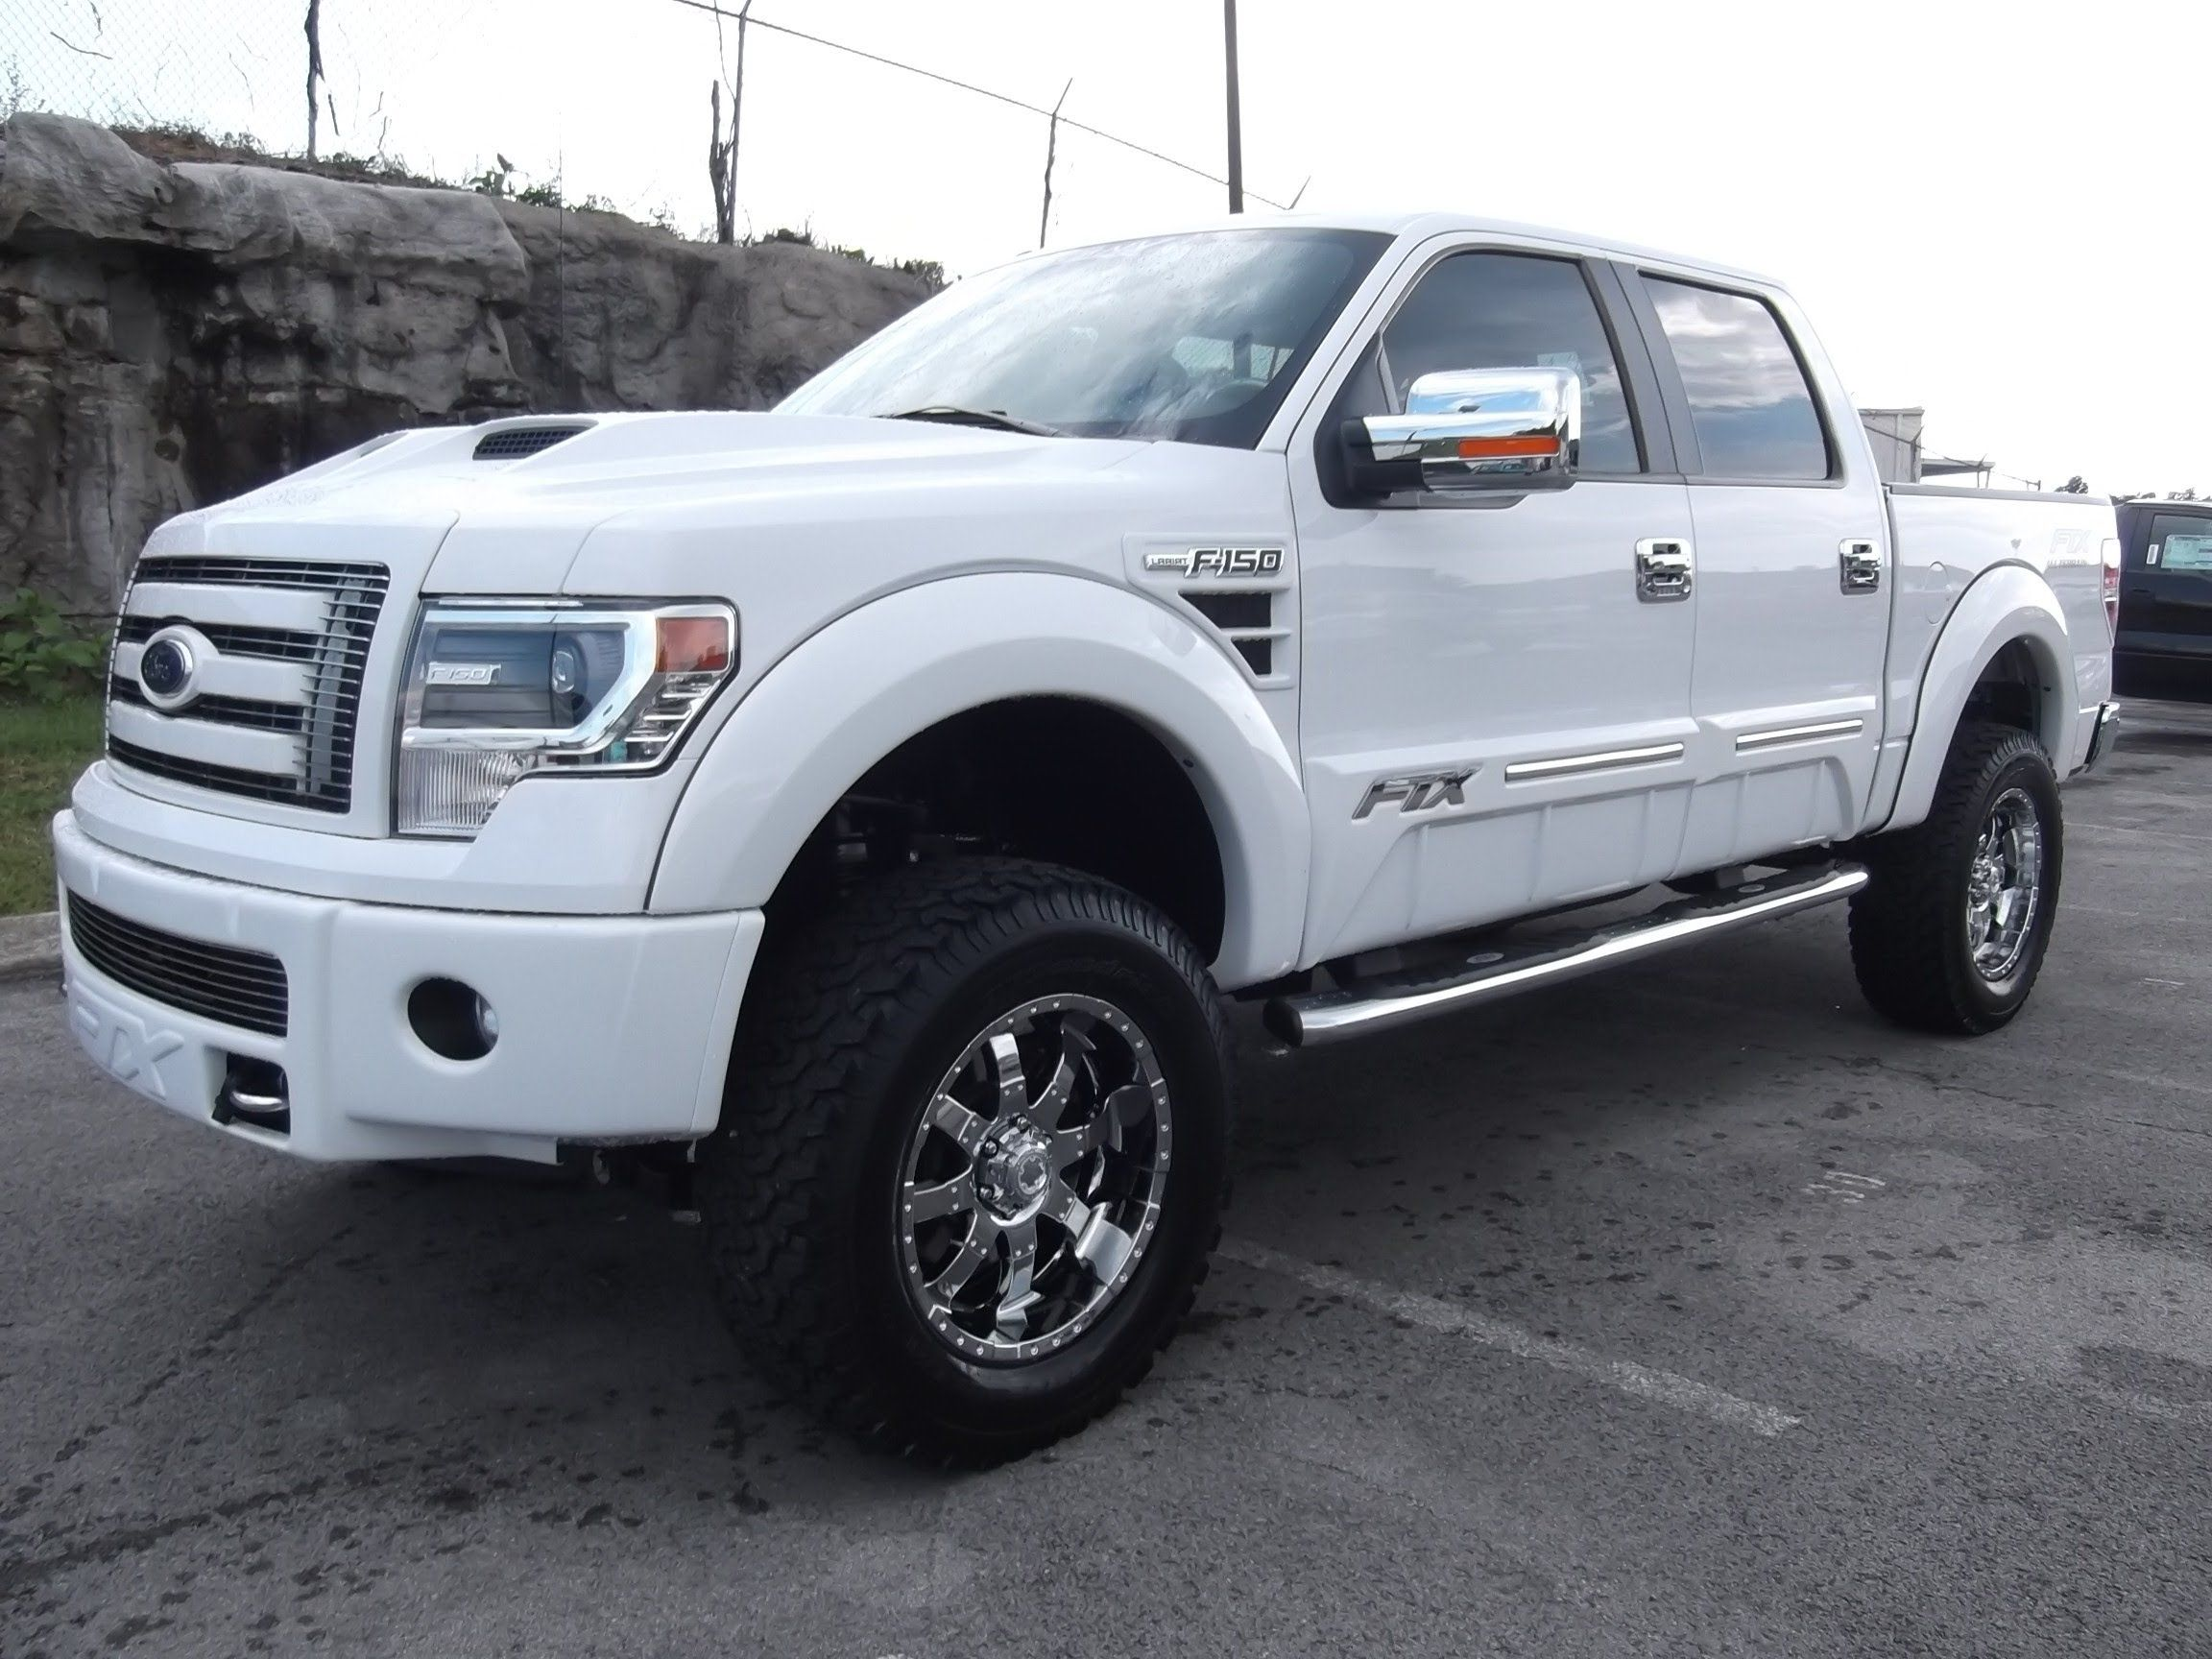 2013 white ford f150 lifted jdr0bp6q - White 2005 Ford F150 Lifted